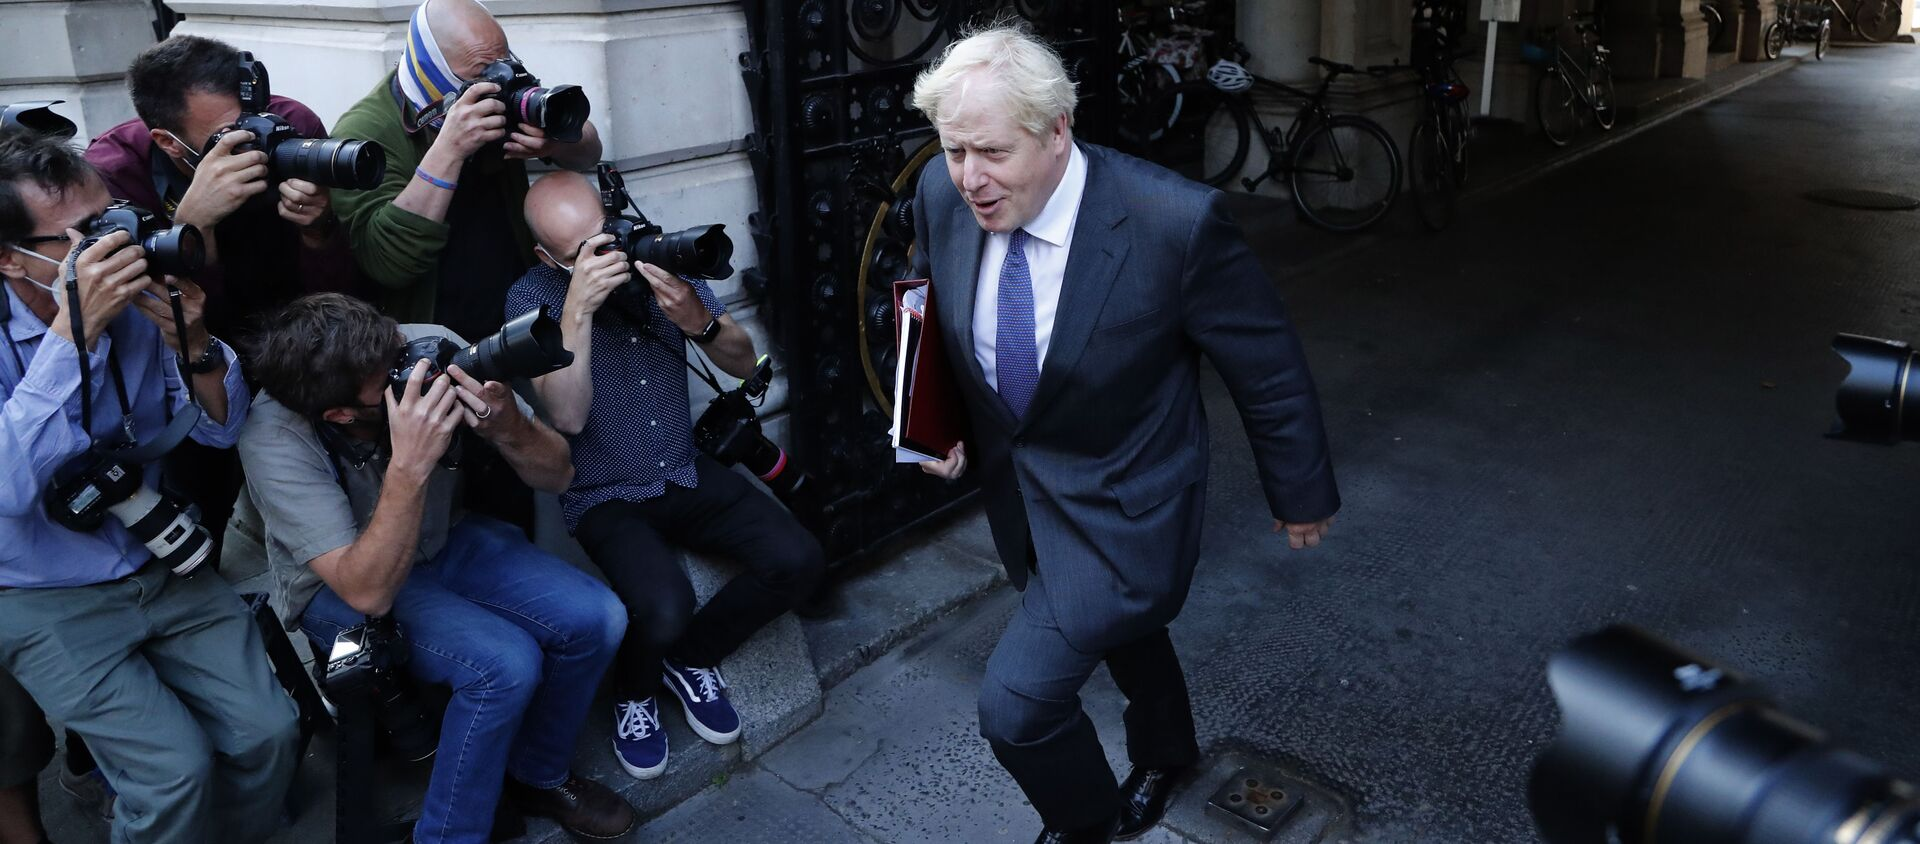 Britain's Prime Minister Boris Johnson walks past media photographers to his office in Downing Street after a cabinet meeting in London, Tuesday, Sept. 15, 2020. - Sputnik International, 1920